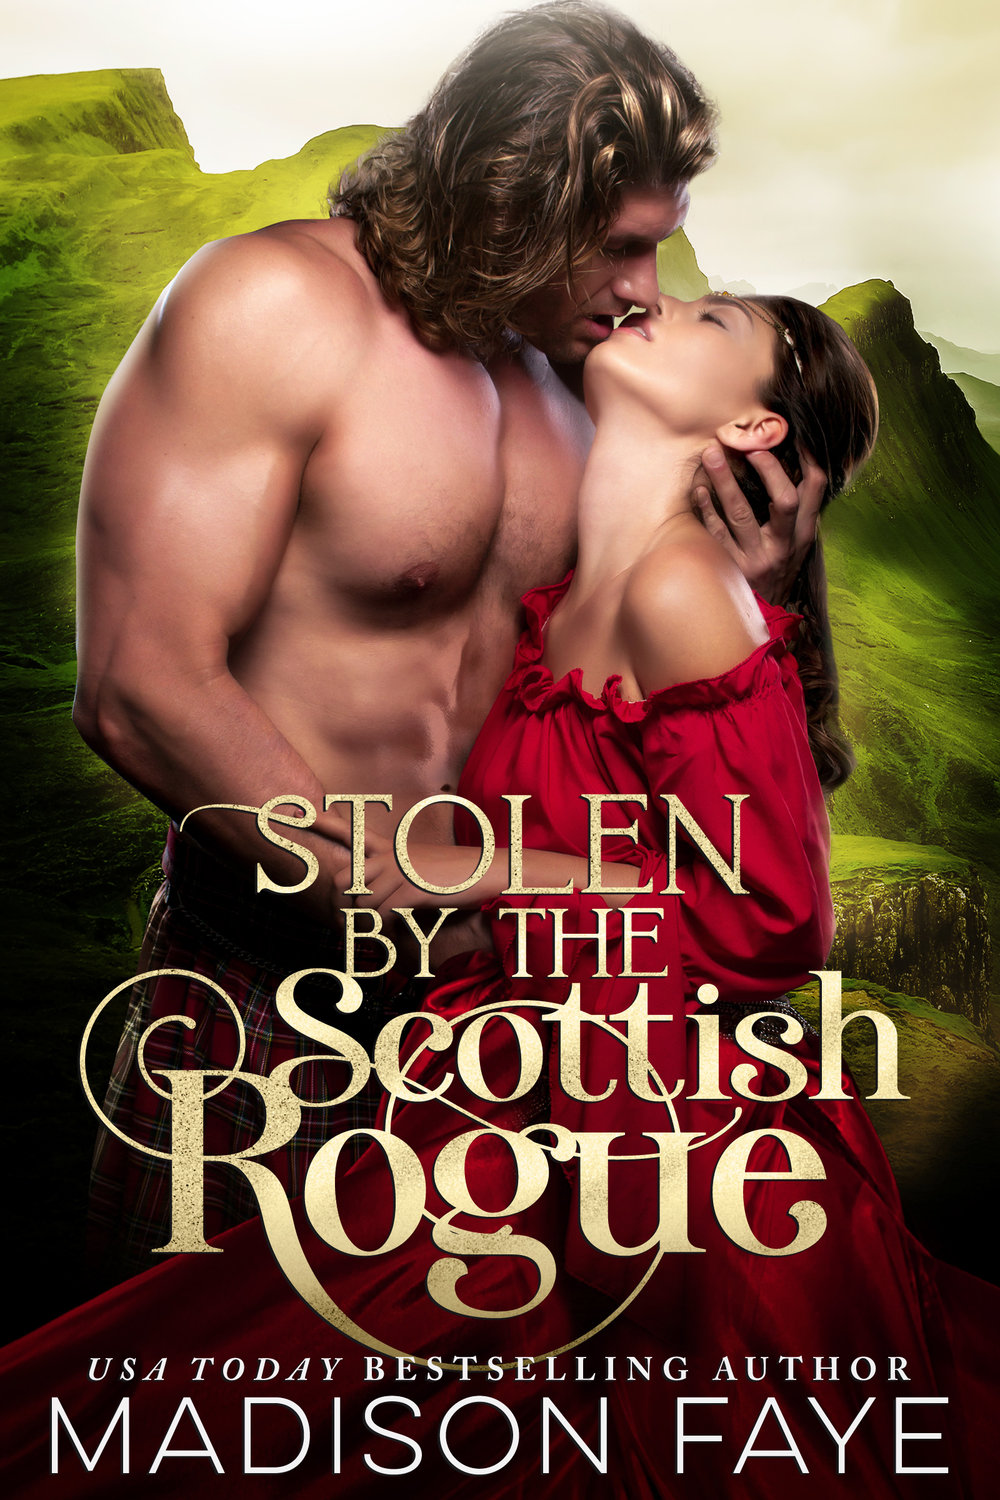 MF_StolenByTheScottishRogue_Ebook.jpg